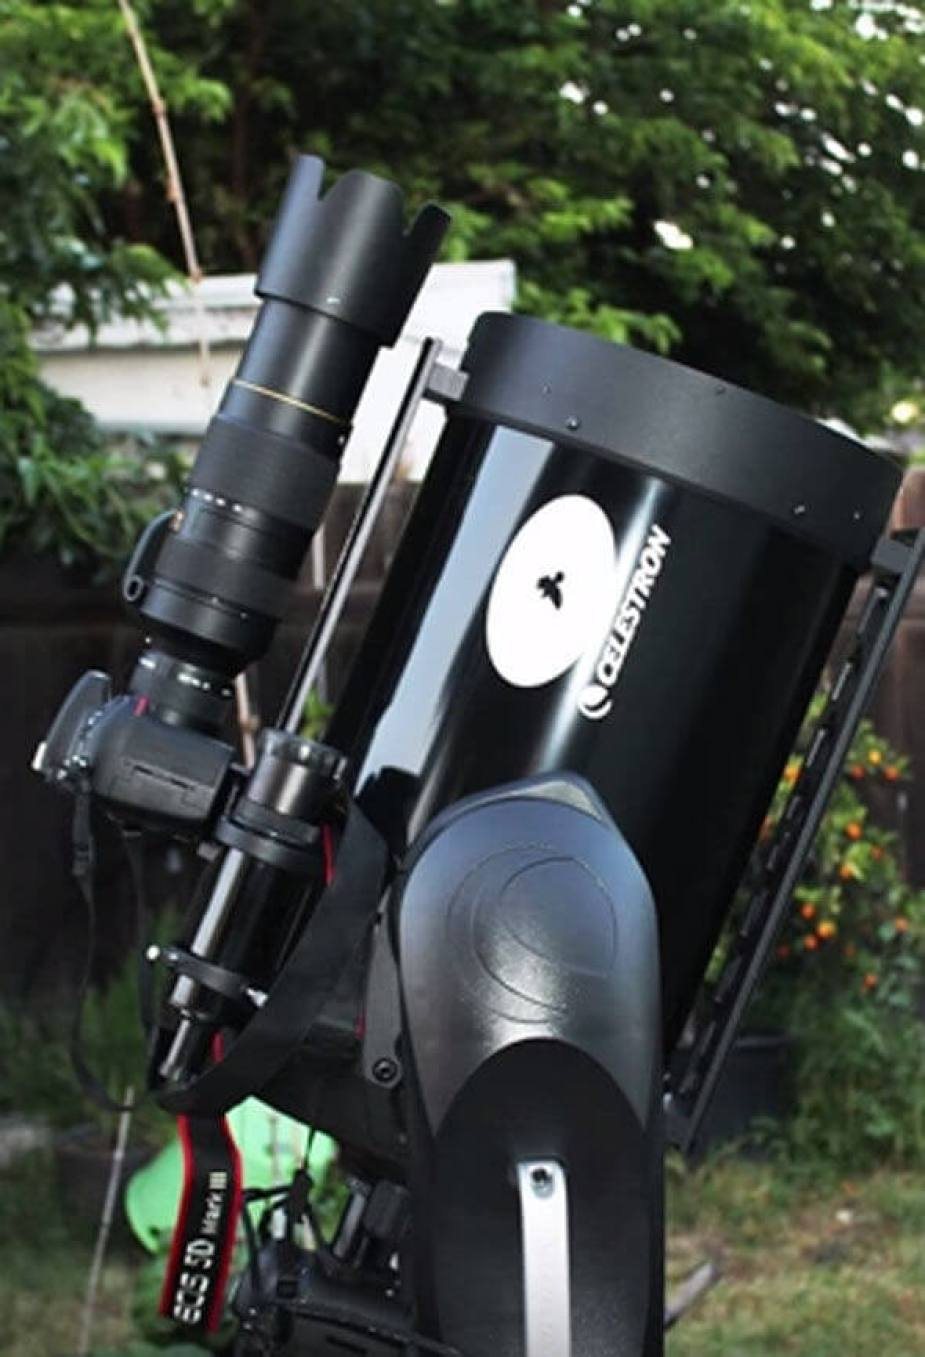 Ccrow777 shows of his high-tech camera kit